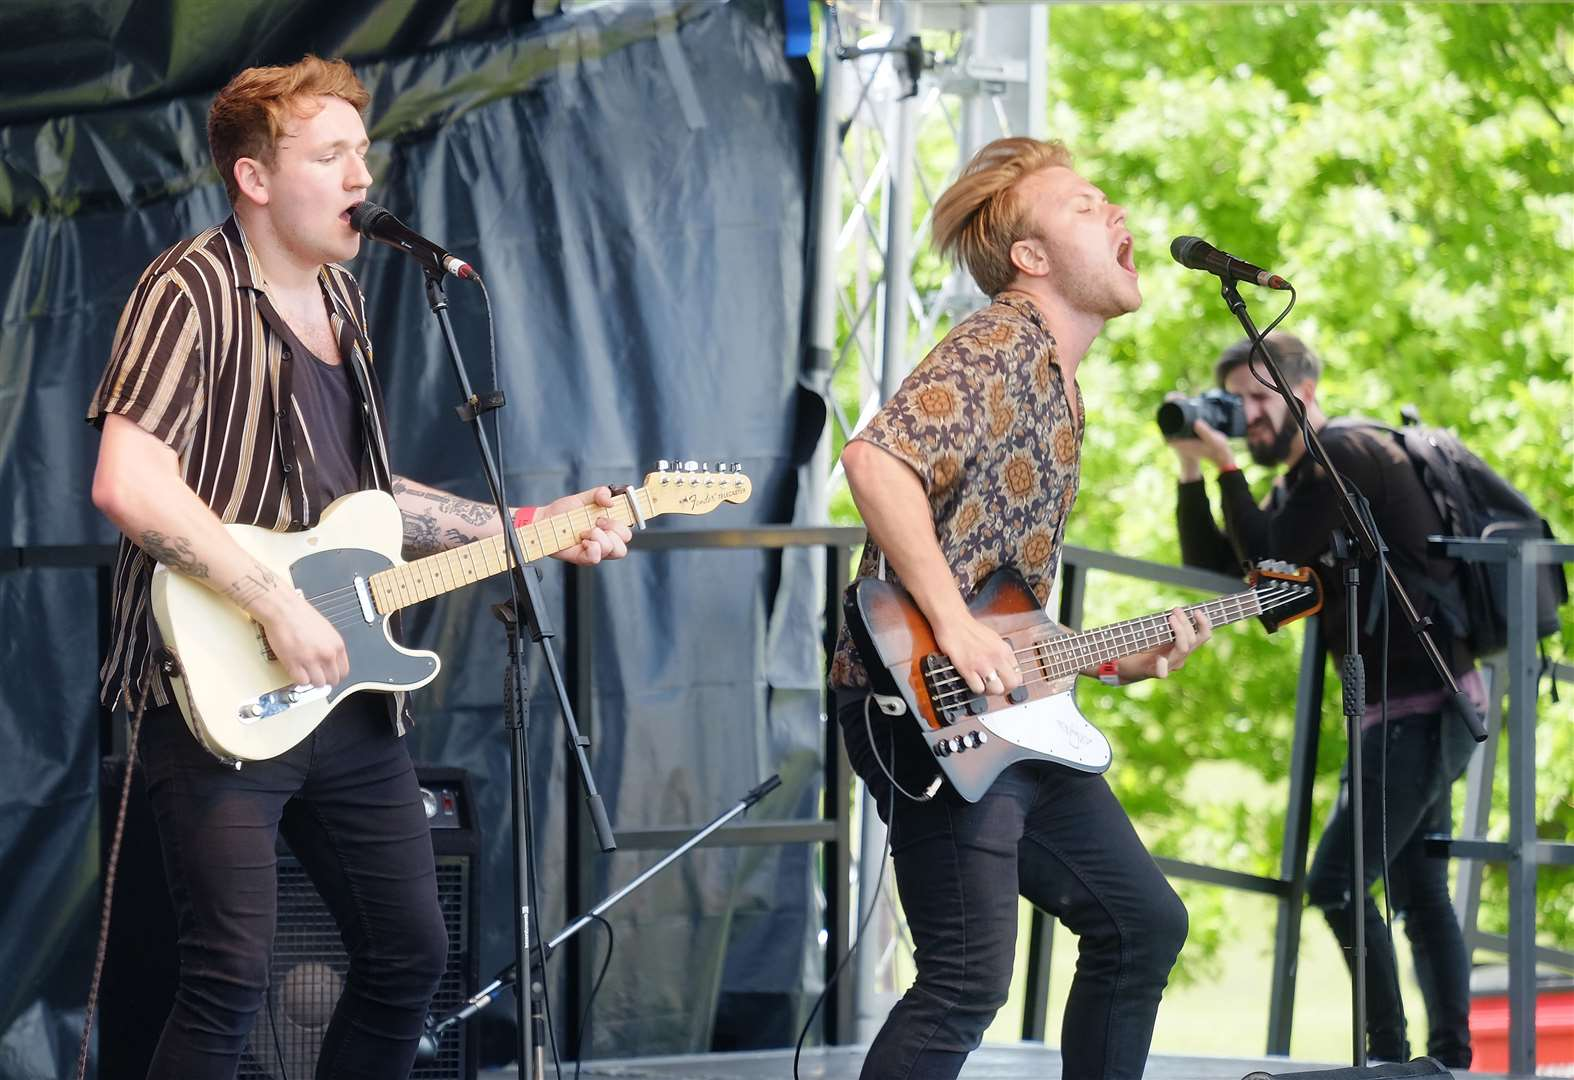 PICTURES: Thousands flock to Long Melford for LeeStock music festival